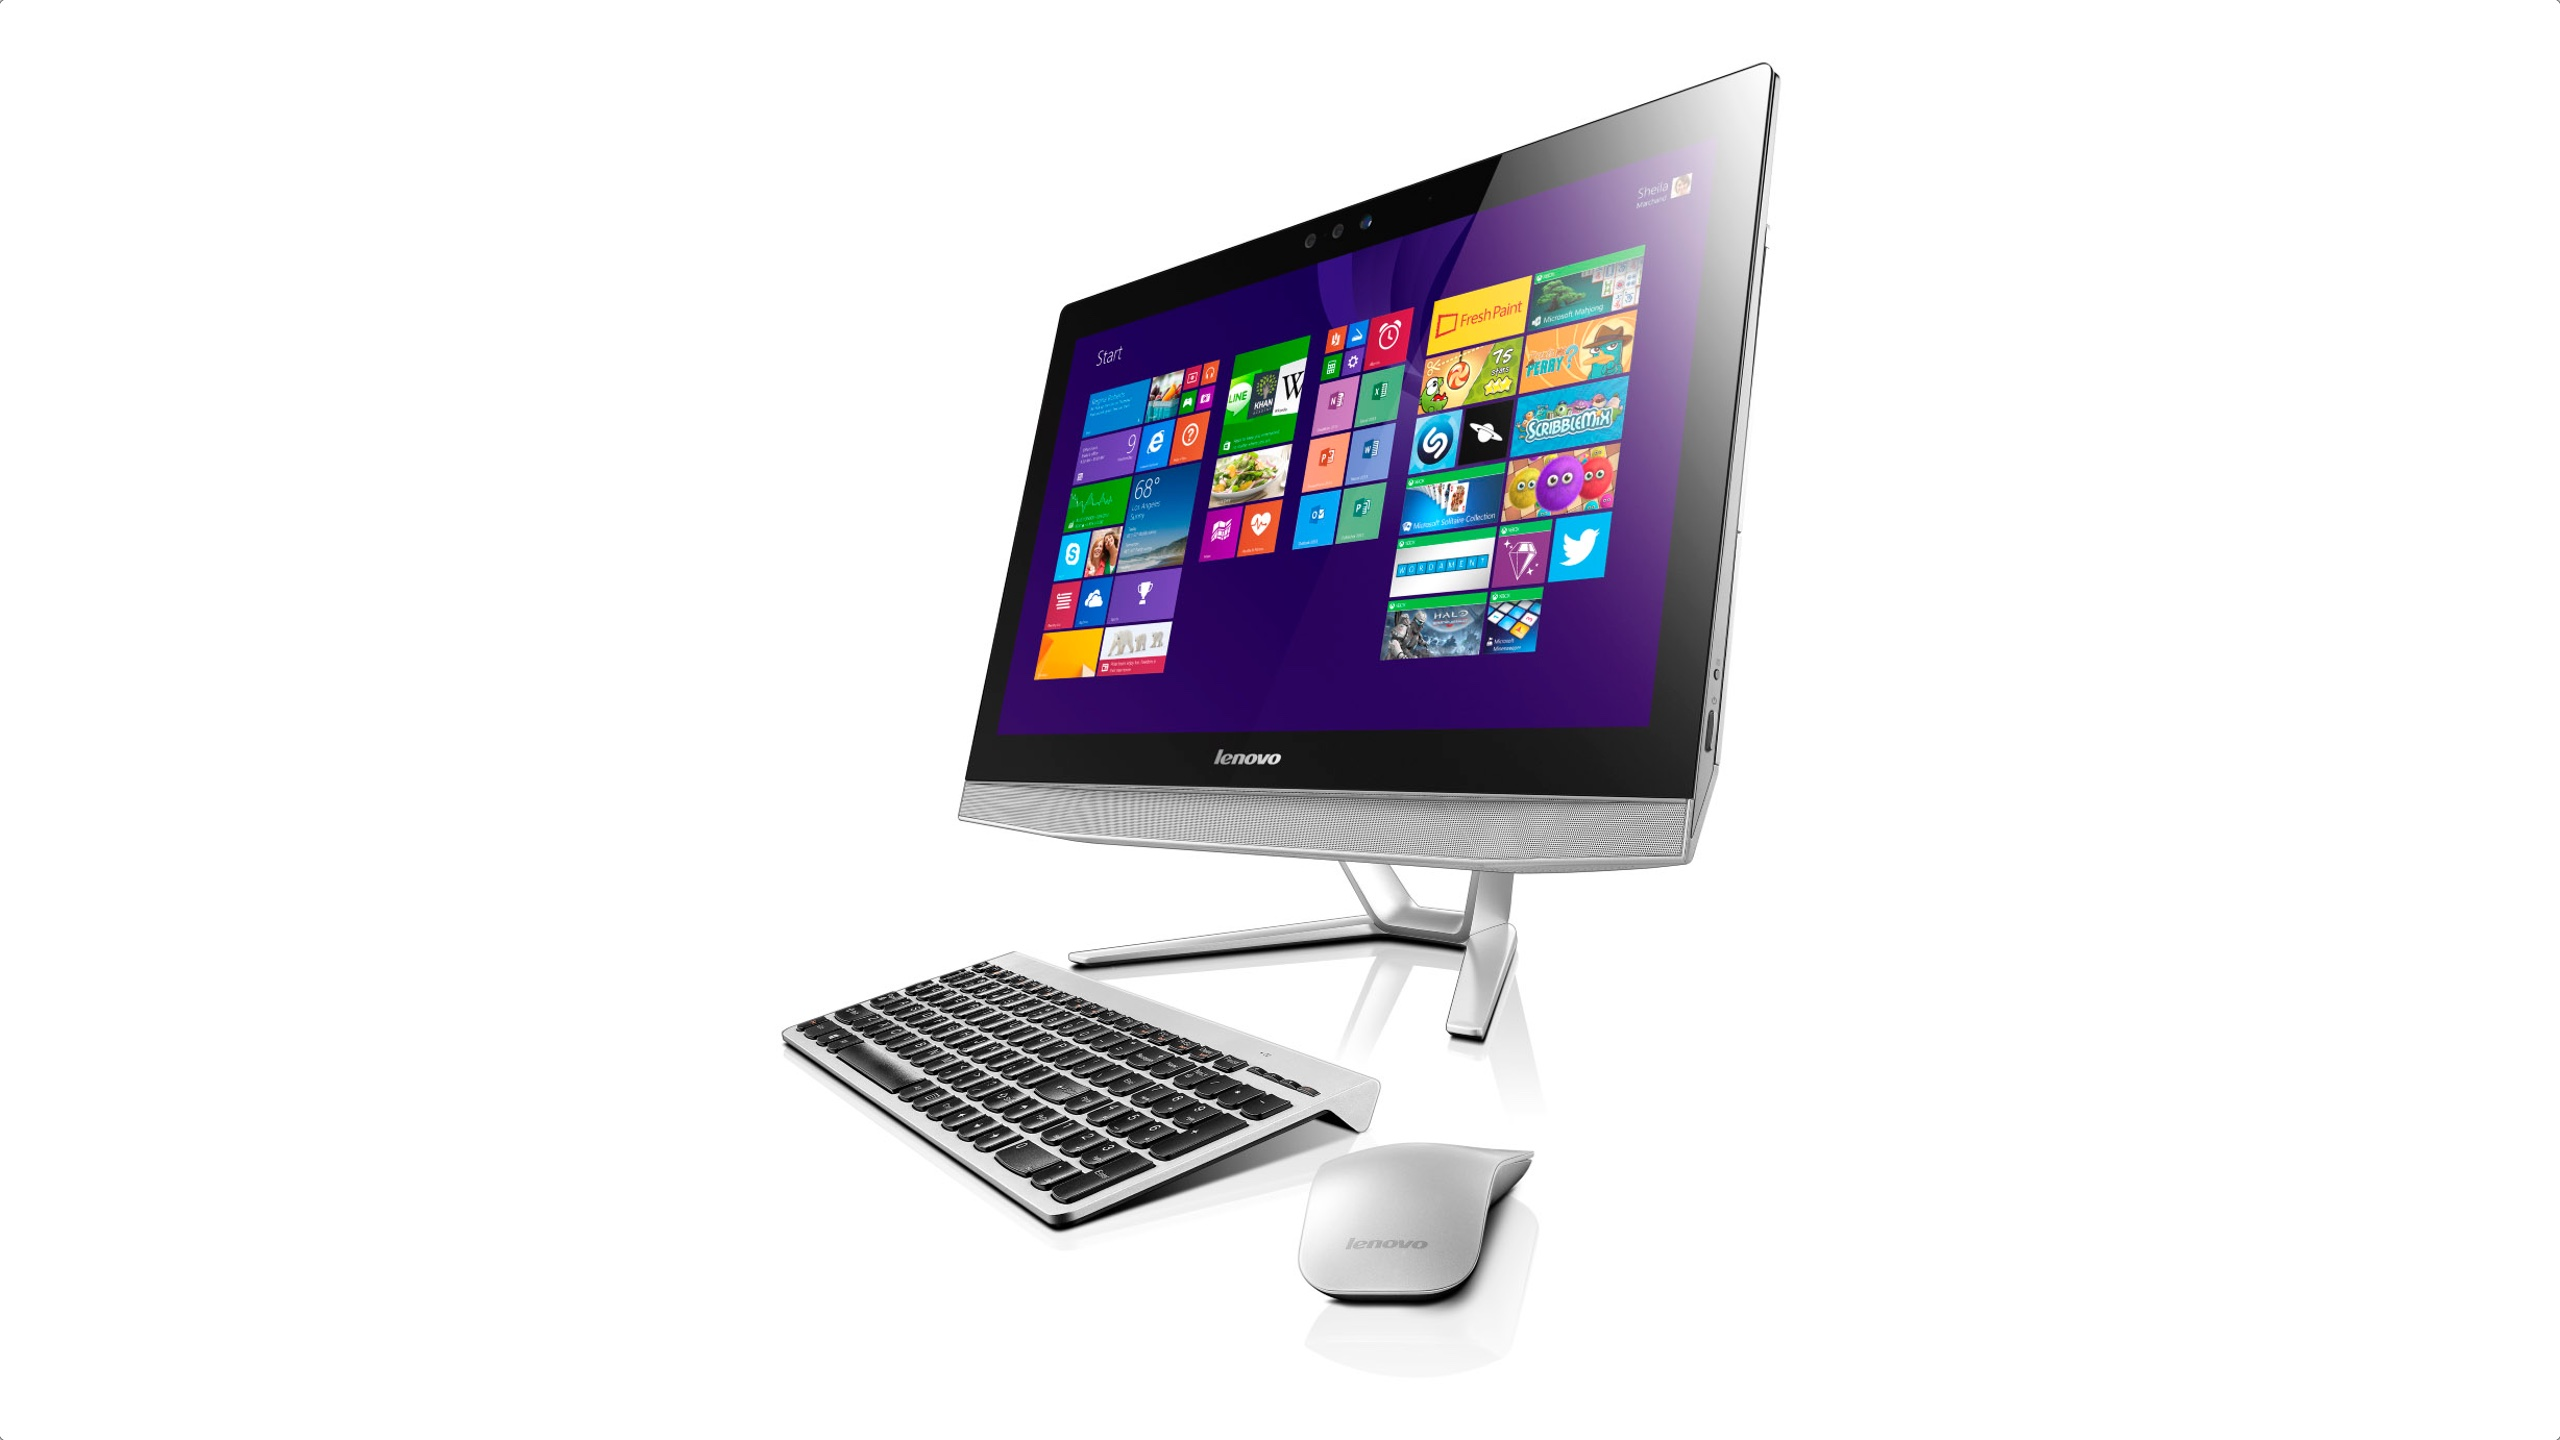 Lenovo-b50-all-in-one-desktop